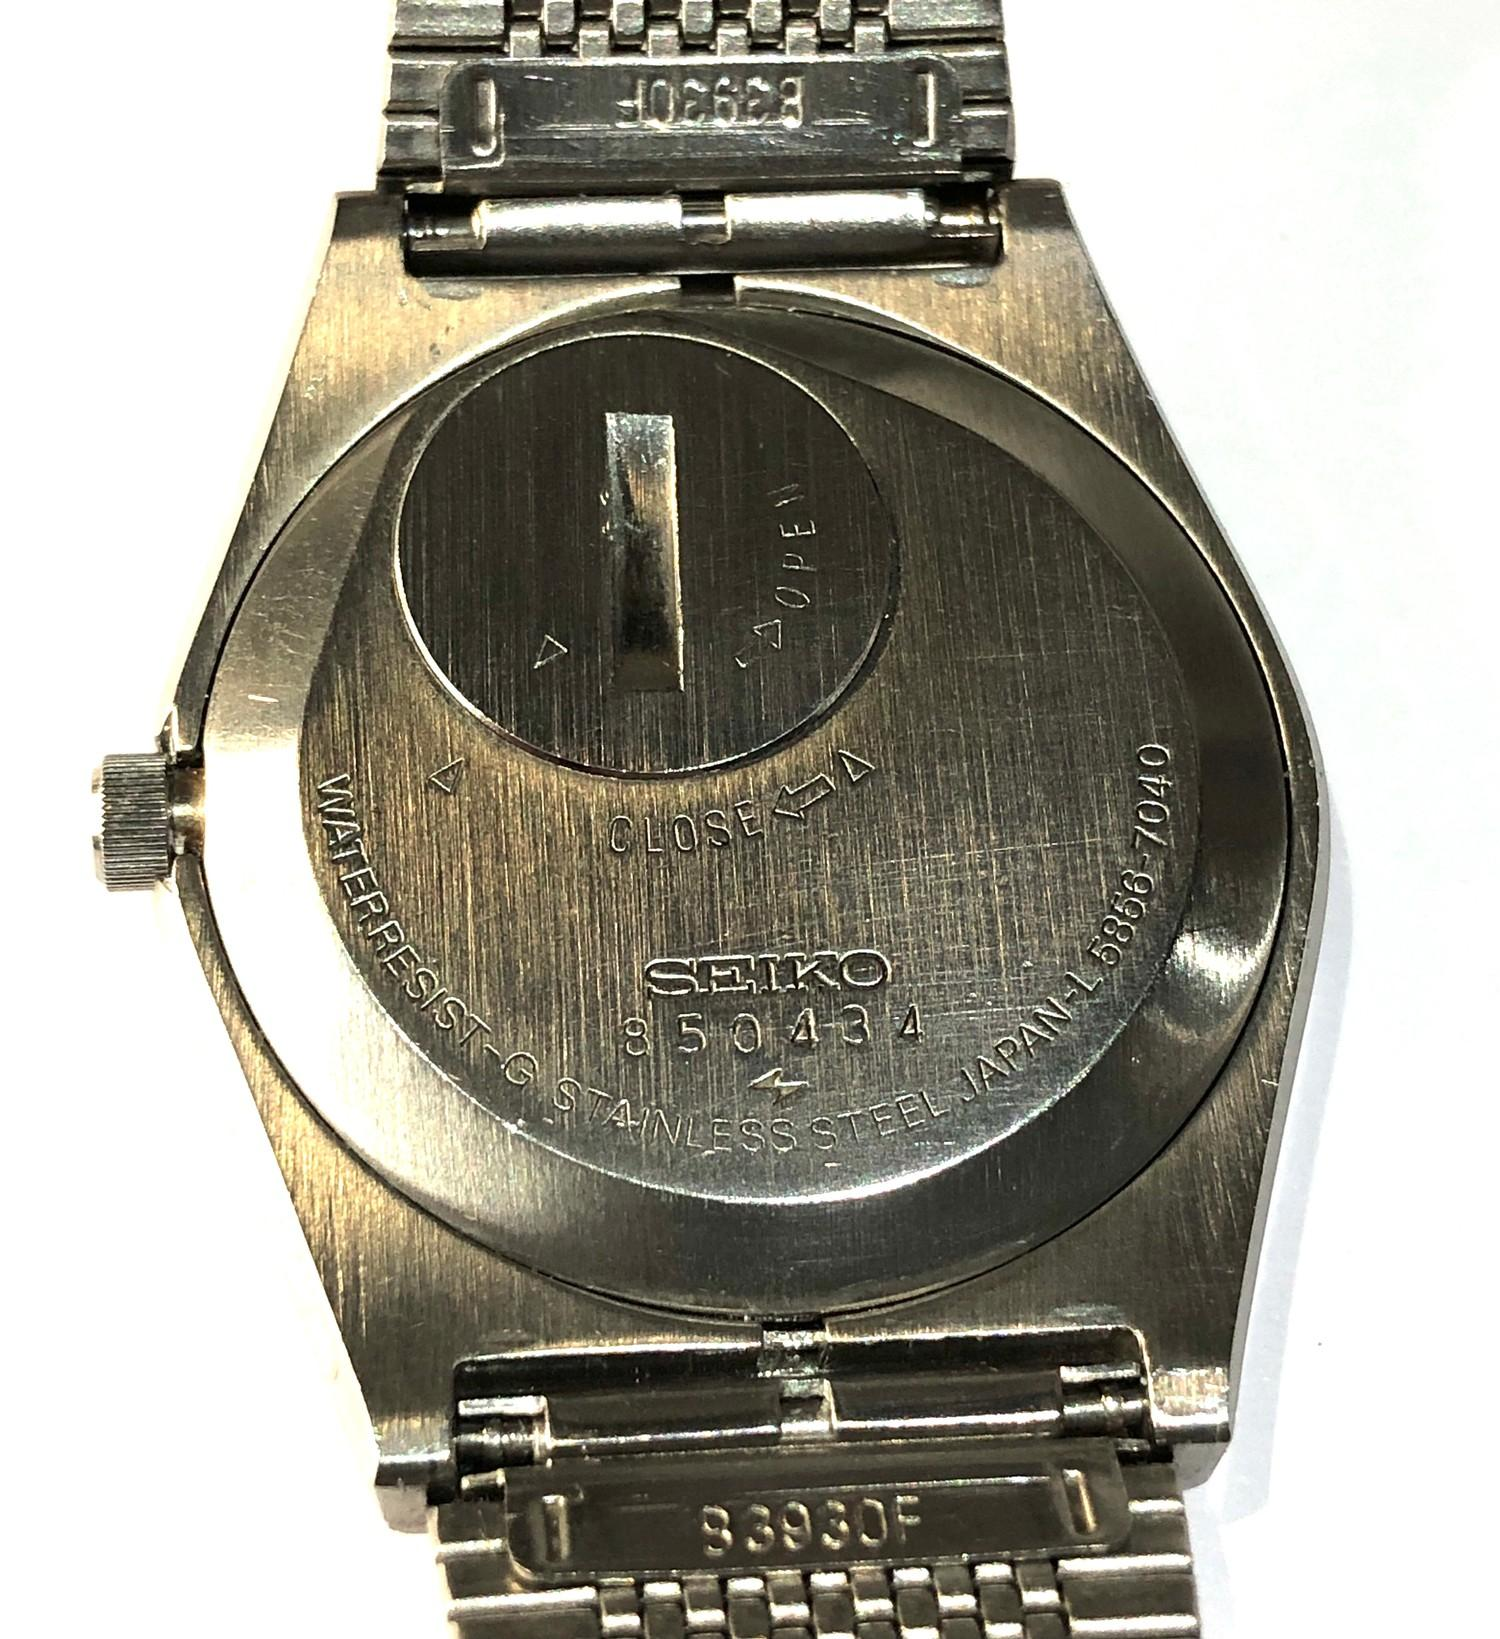 Vintage Seiko king quartz 5856-7040 watch is in working order but no warranty given - Image 4 of 5